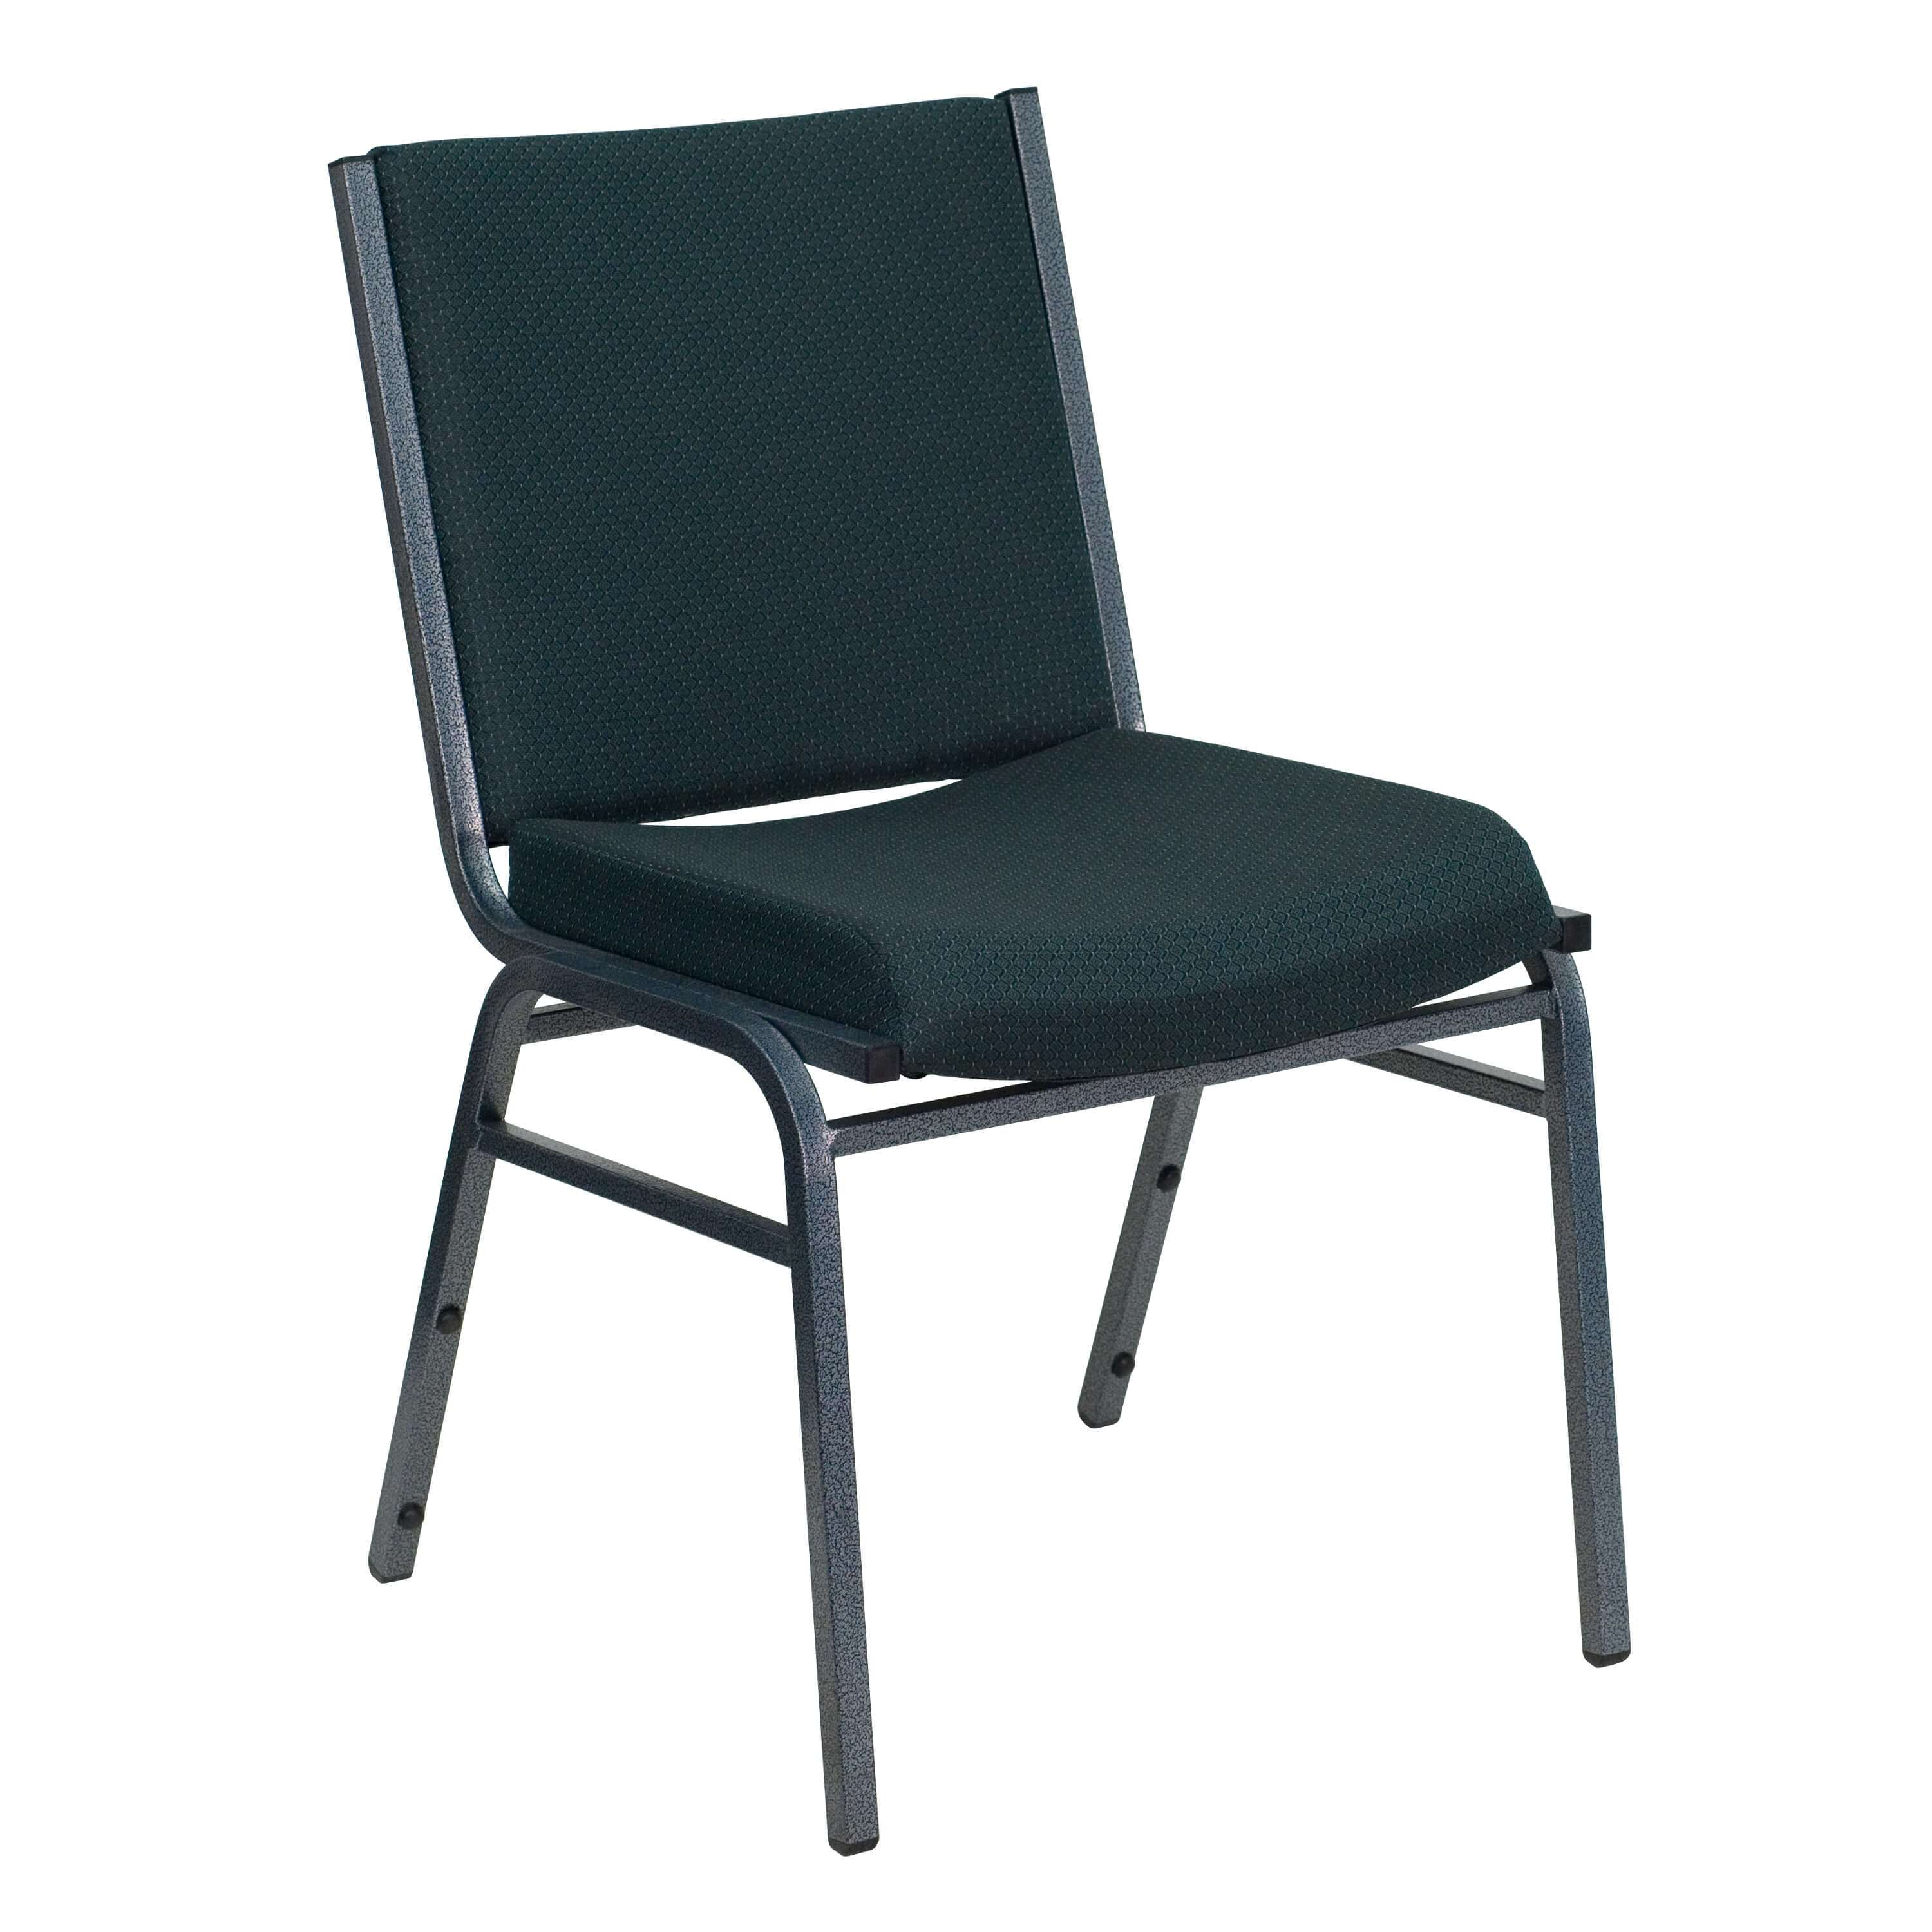 Stackable chairs CUB XU 60153 GN GG FLA